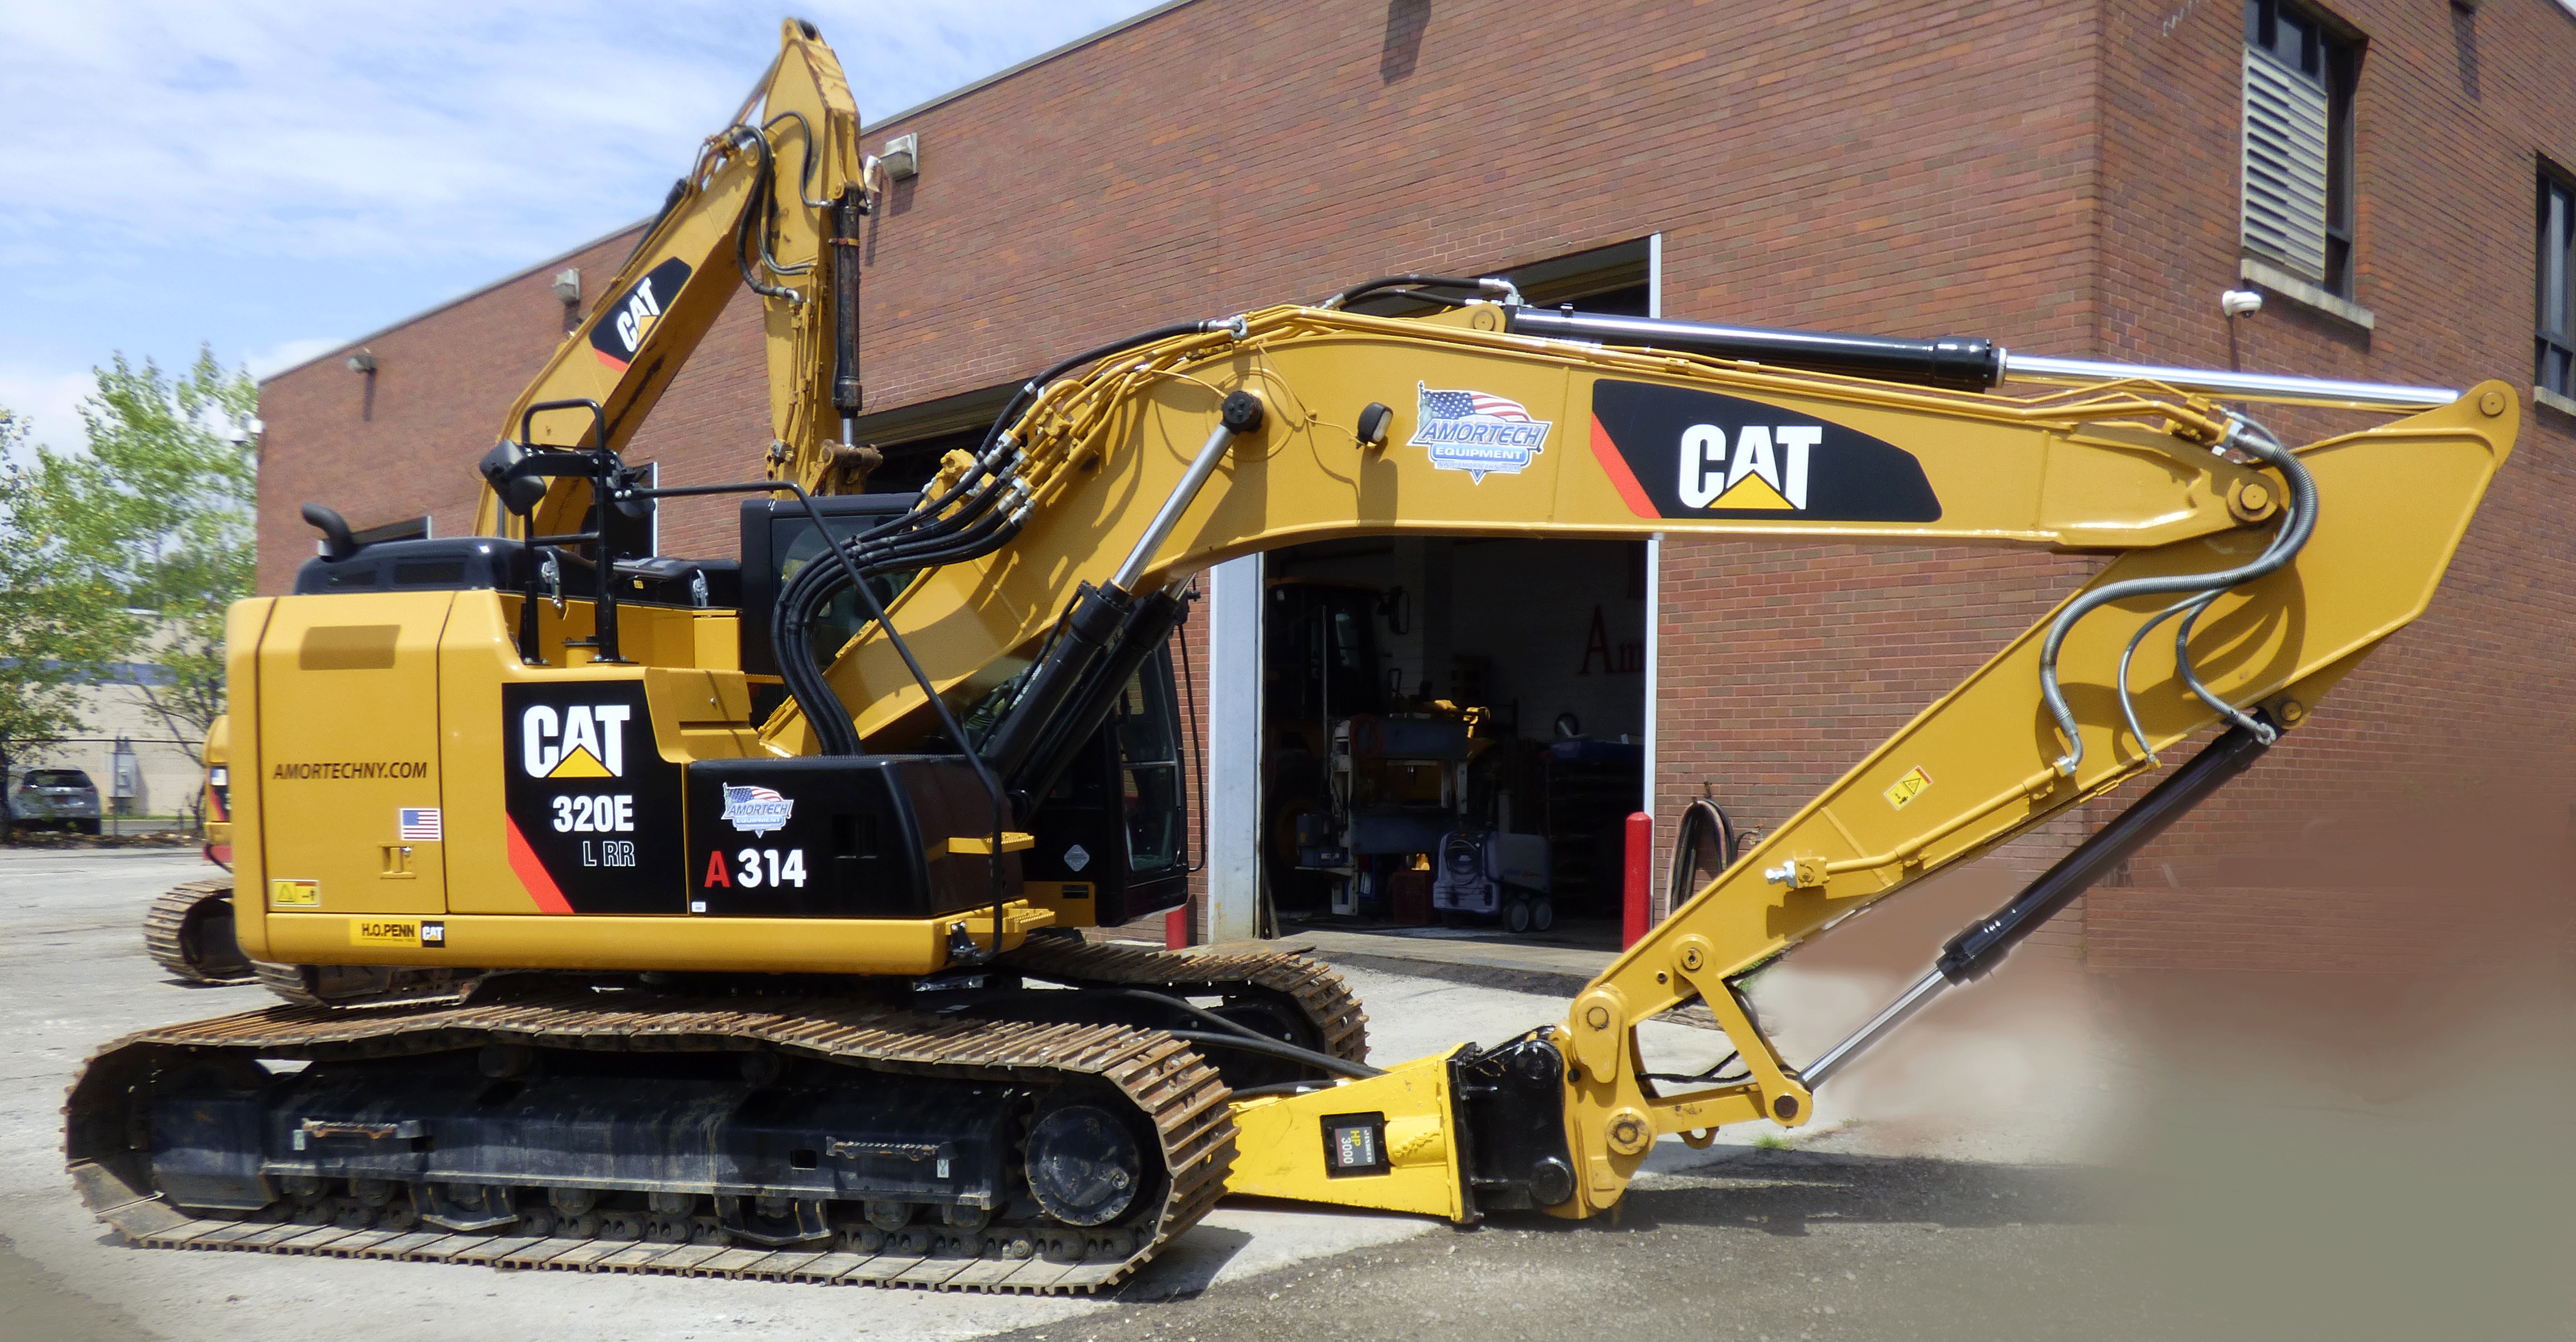 <br>CAT 320E Hydraulic Excavators TIER IV Certified